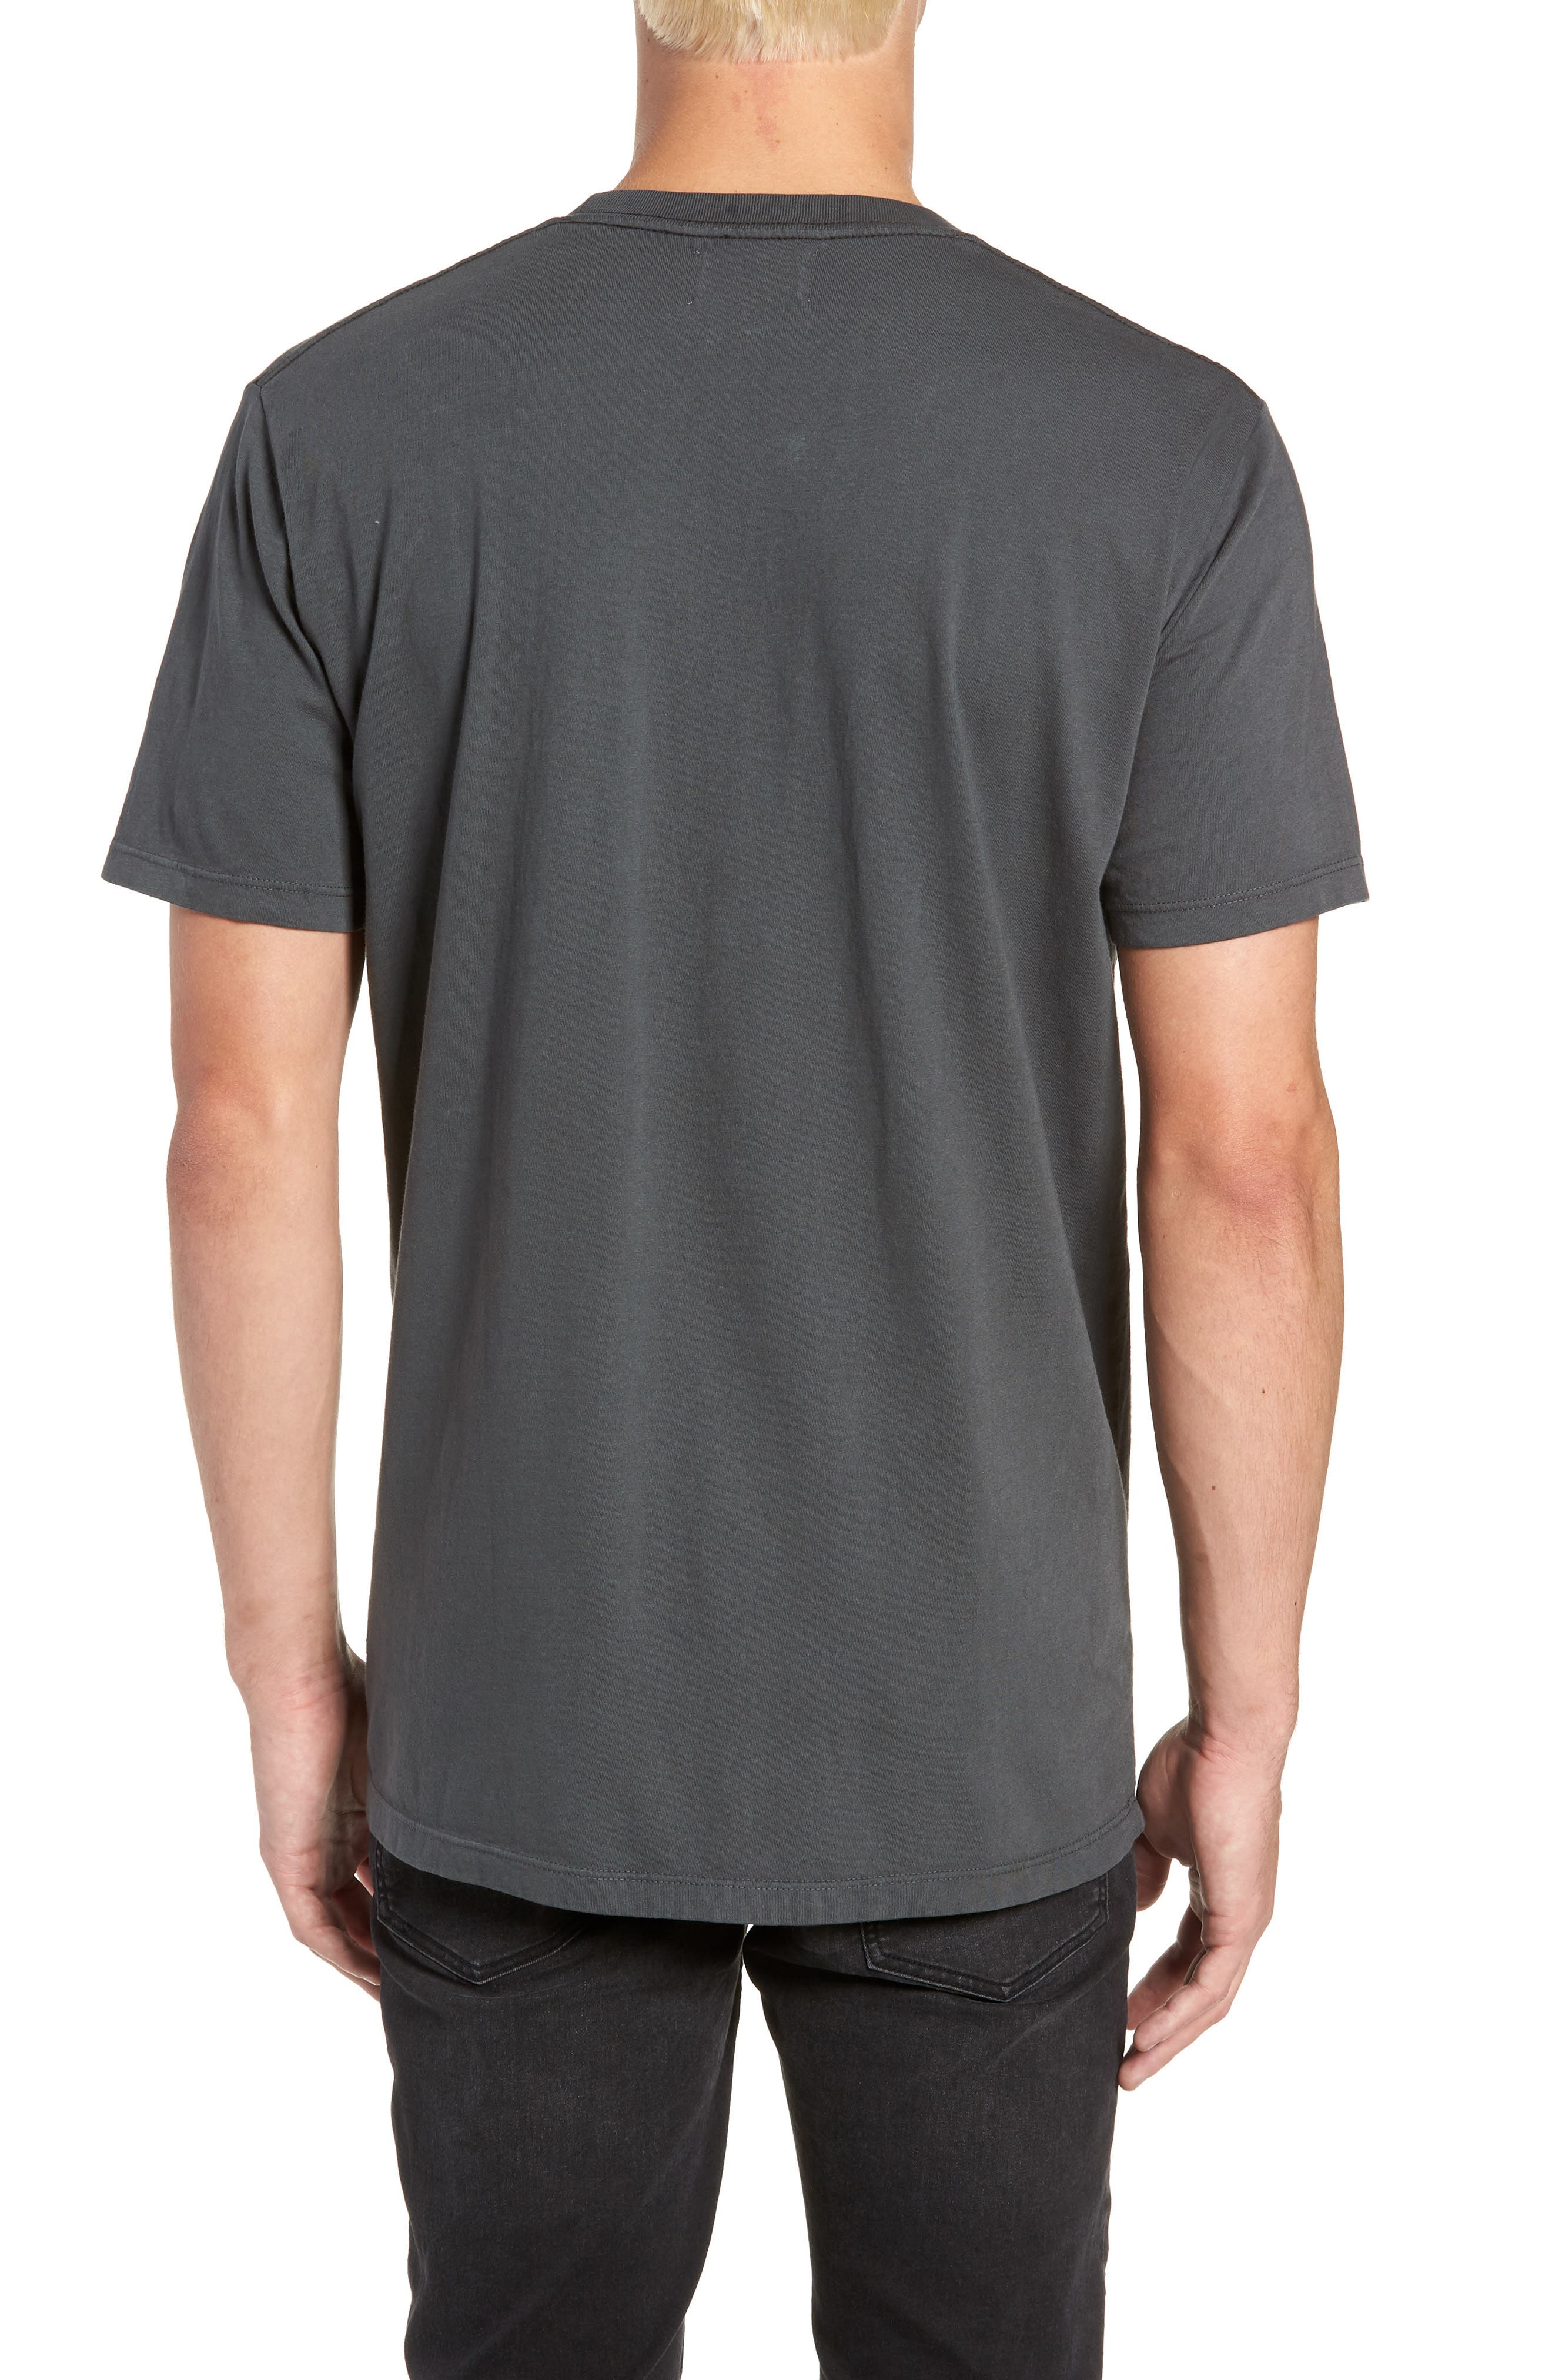 Color Abstraction T-Shirt,                             Alternate thumbnail 2, color,                             020